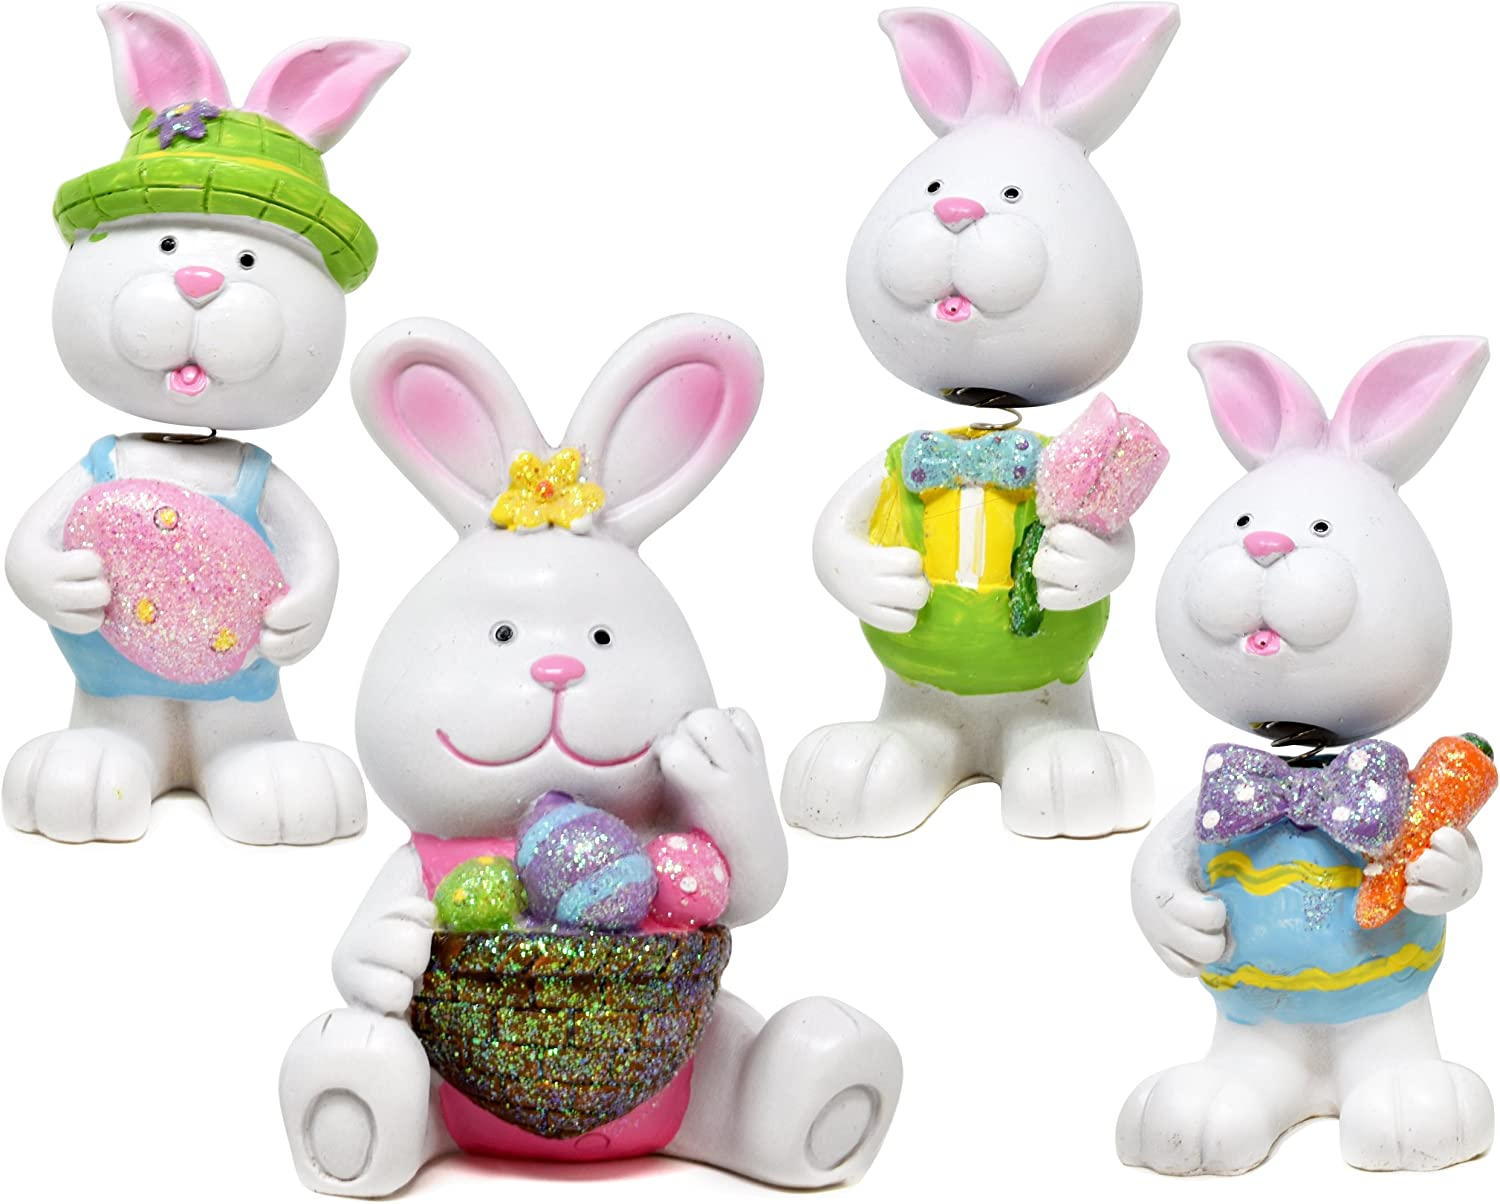 Amazon Com Easter Bunny Figurine Decor Table Topper Spring Holiday Sculpture Decoration Table Top Decorative Centerpiece Bunnies For Home Den 4 Piece Whimsical Party Decorations Room Decor Kitchen Dining